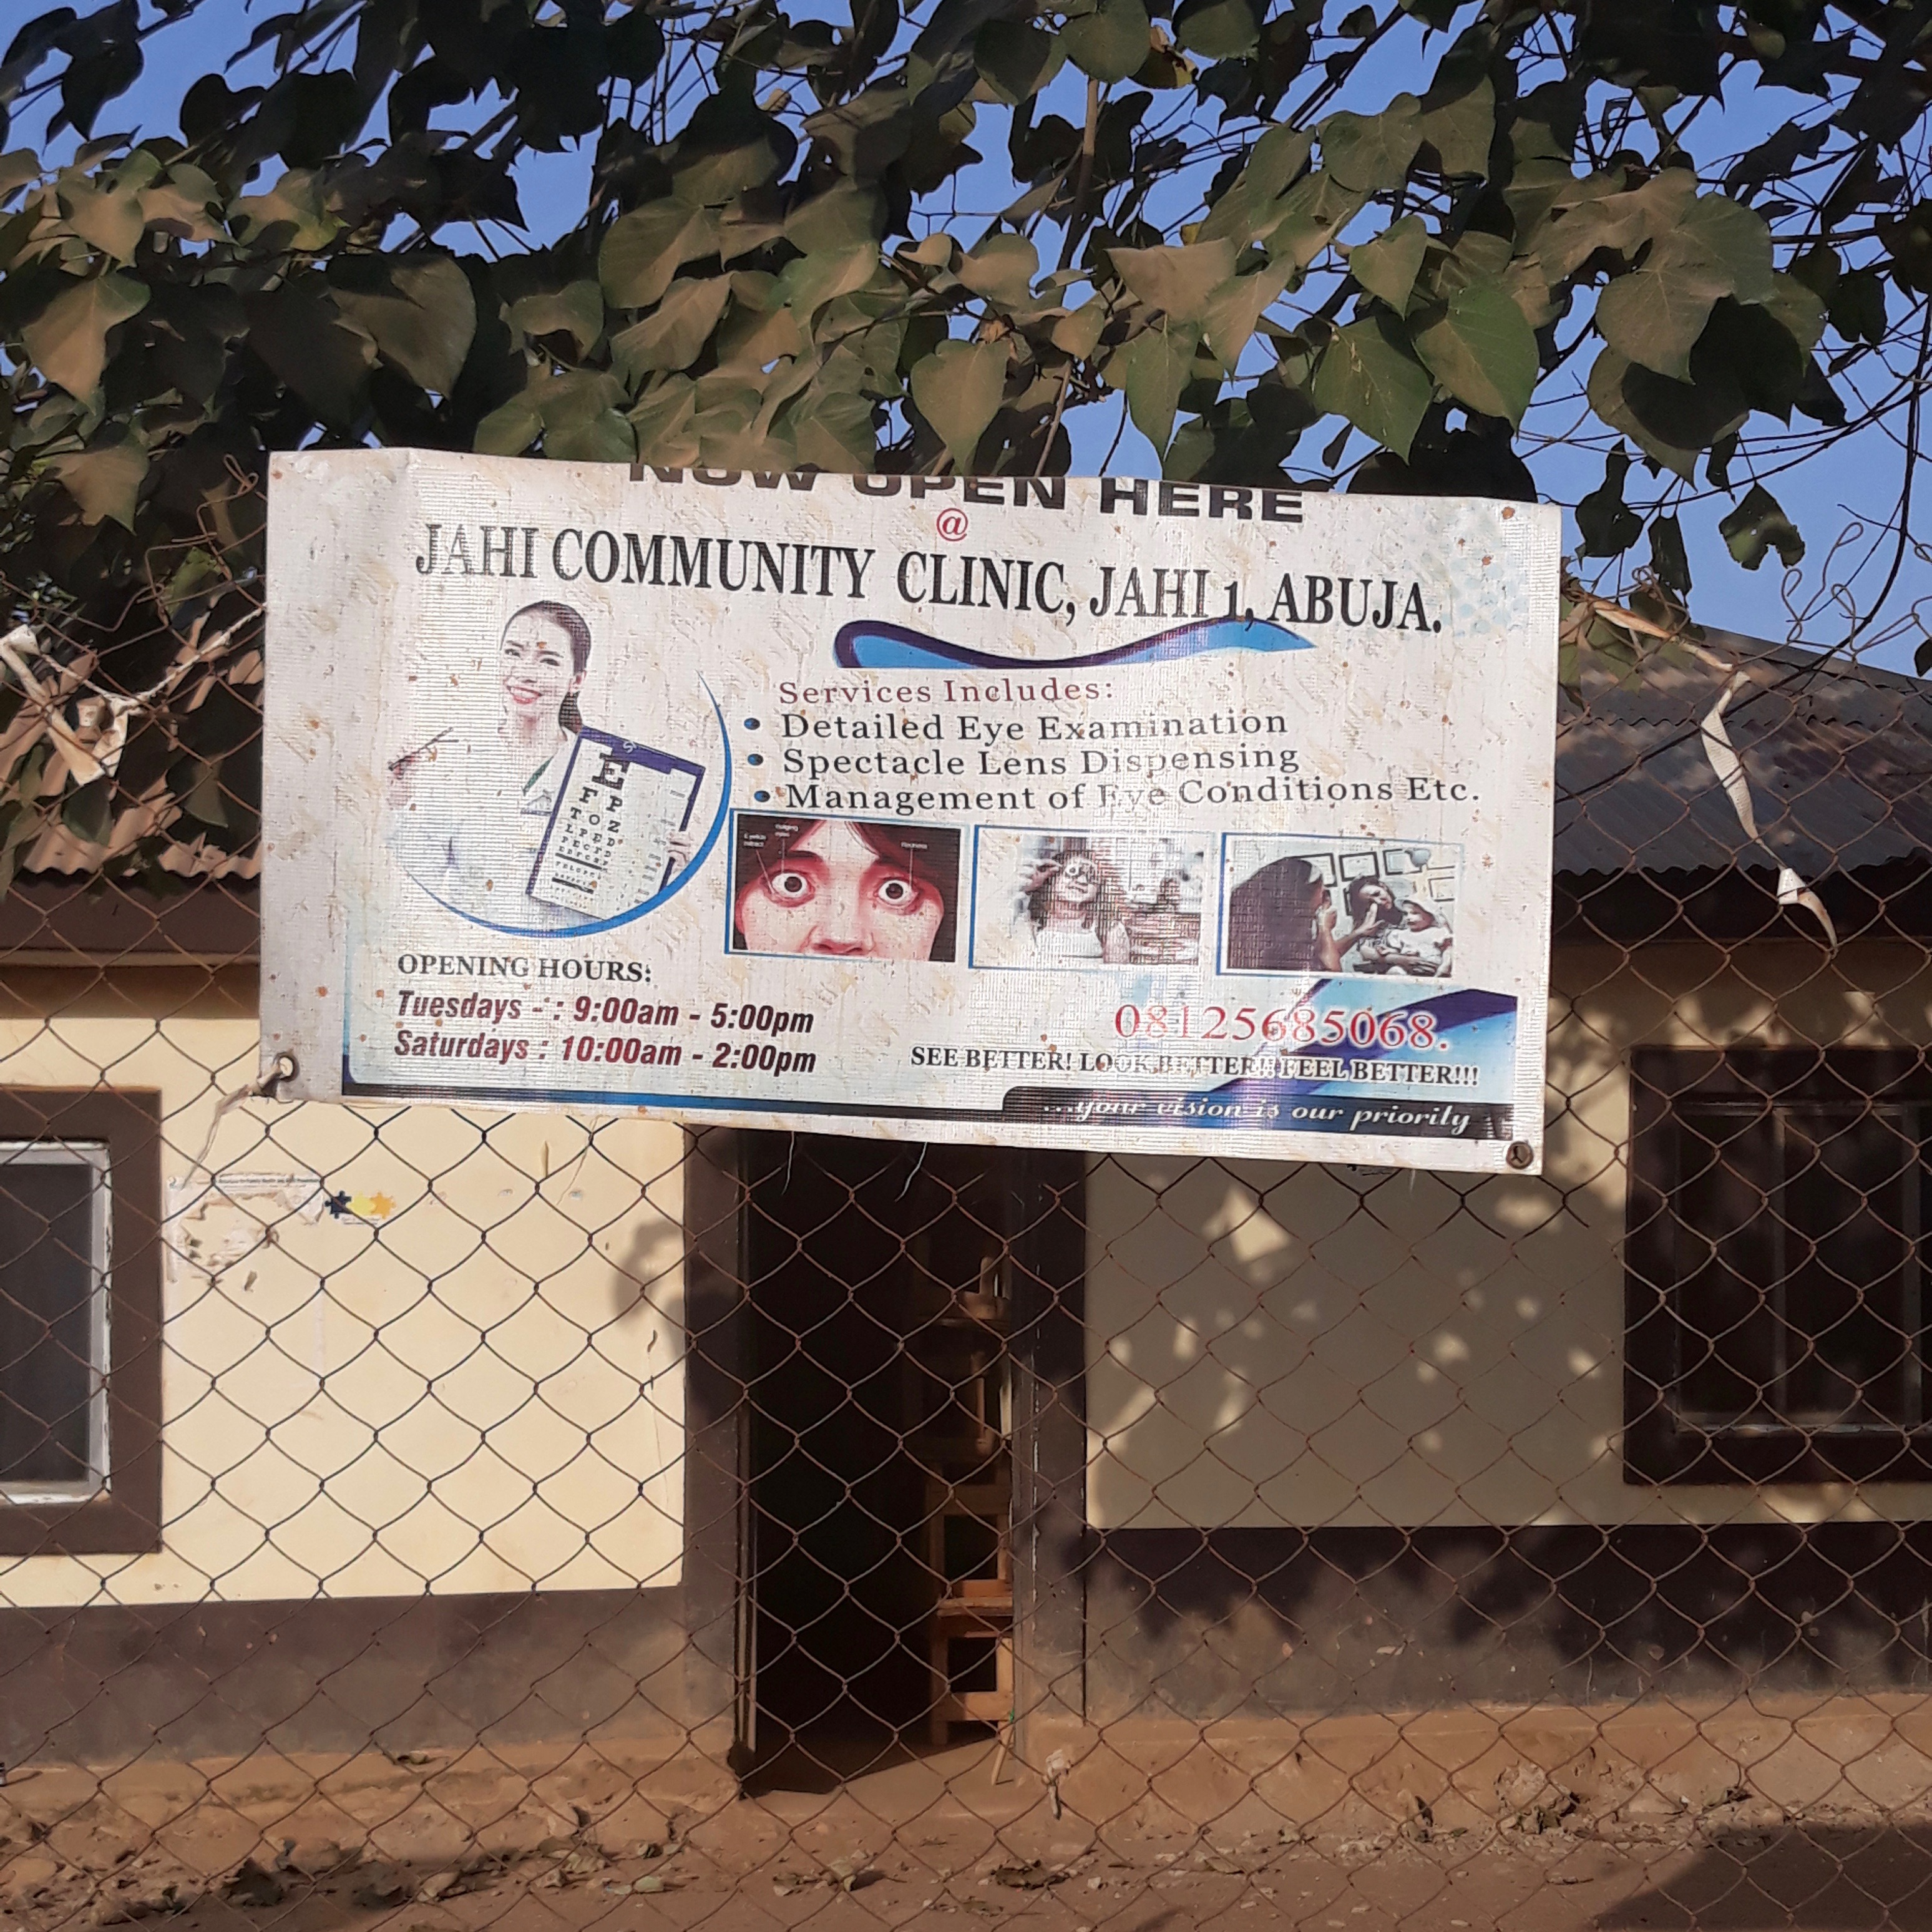 Primary healthcare centres: Where is the basic care we seek?